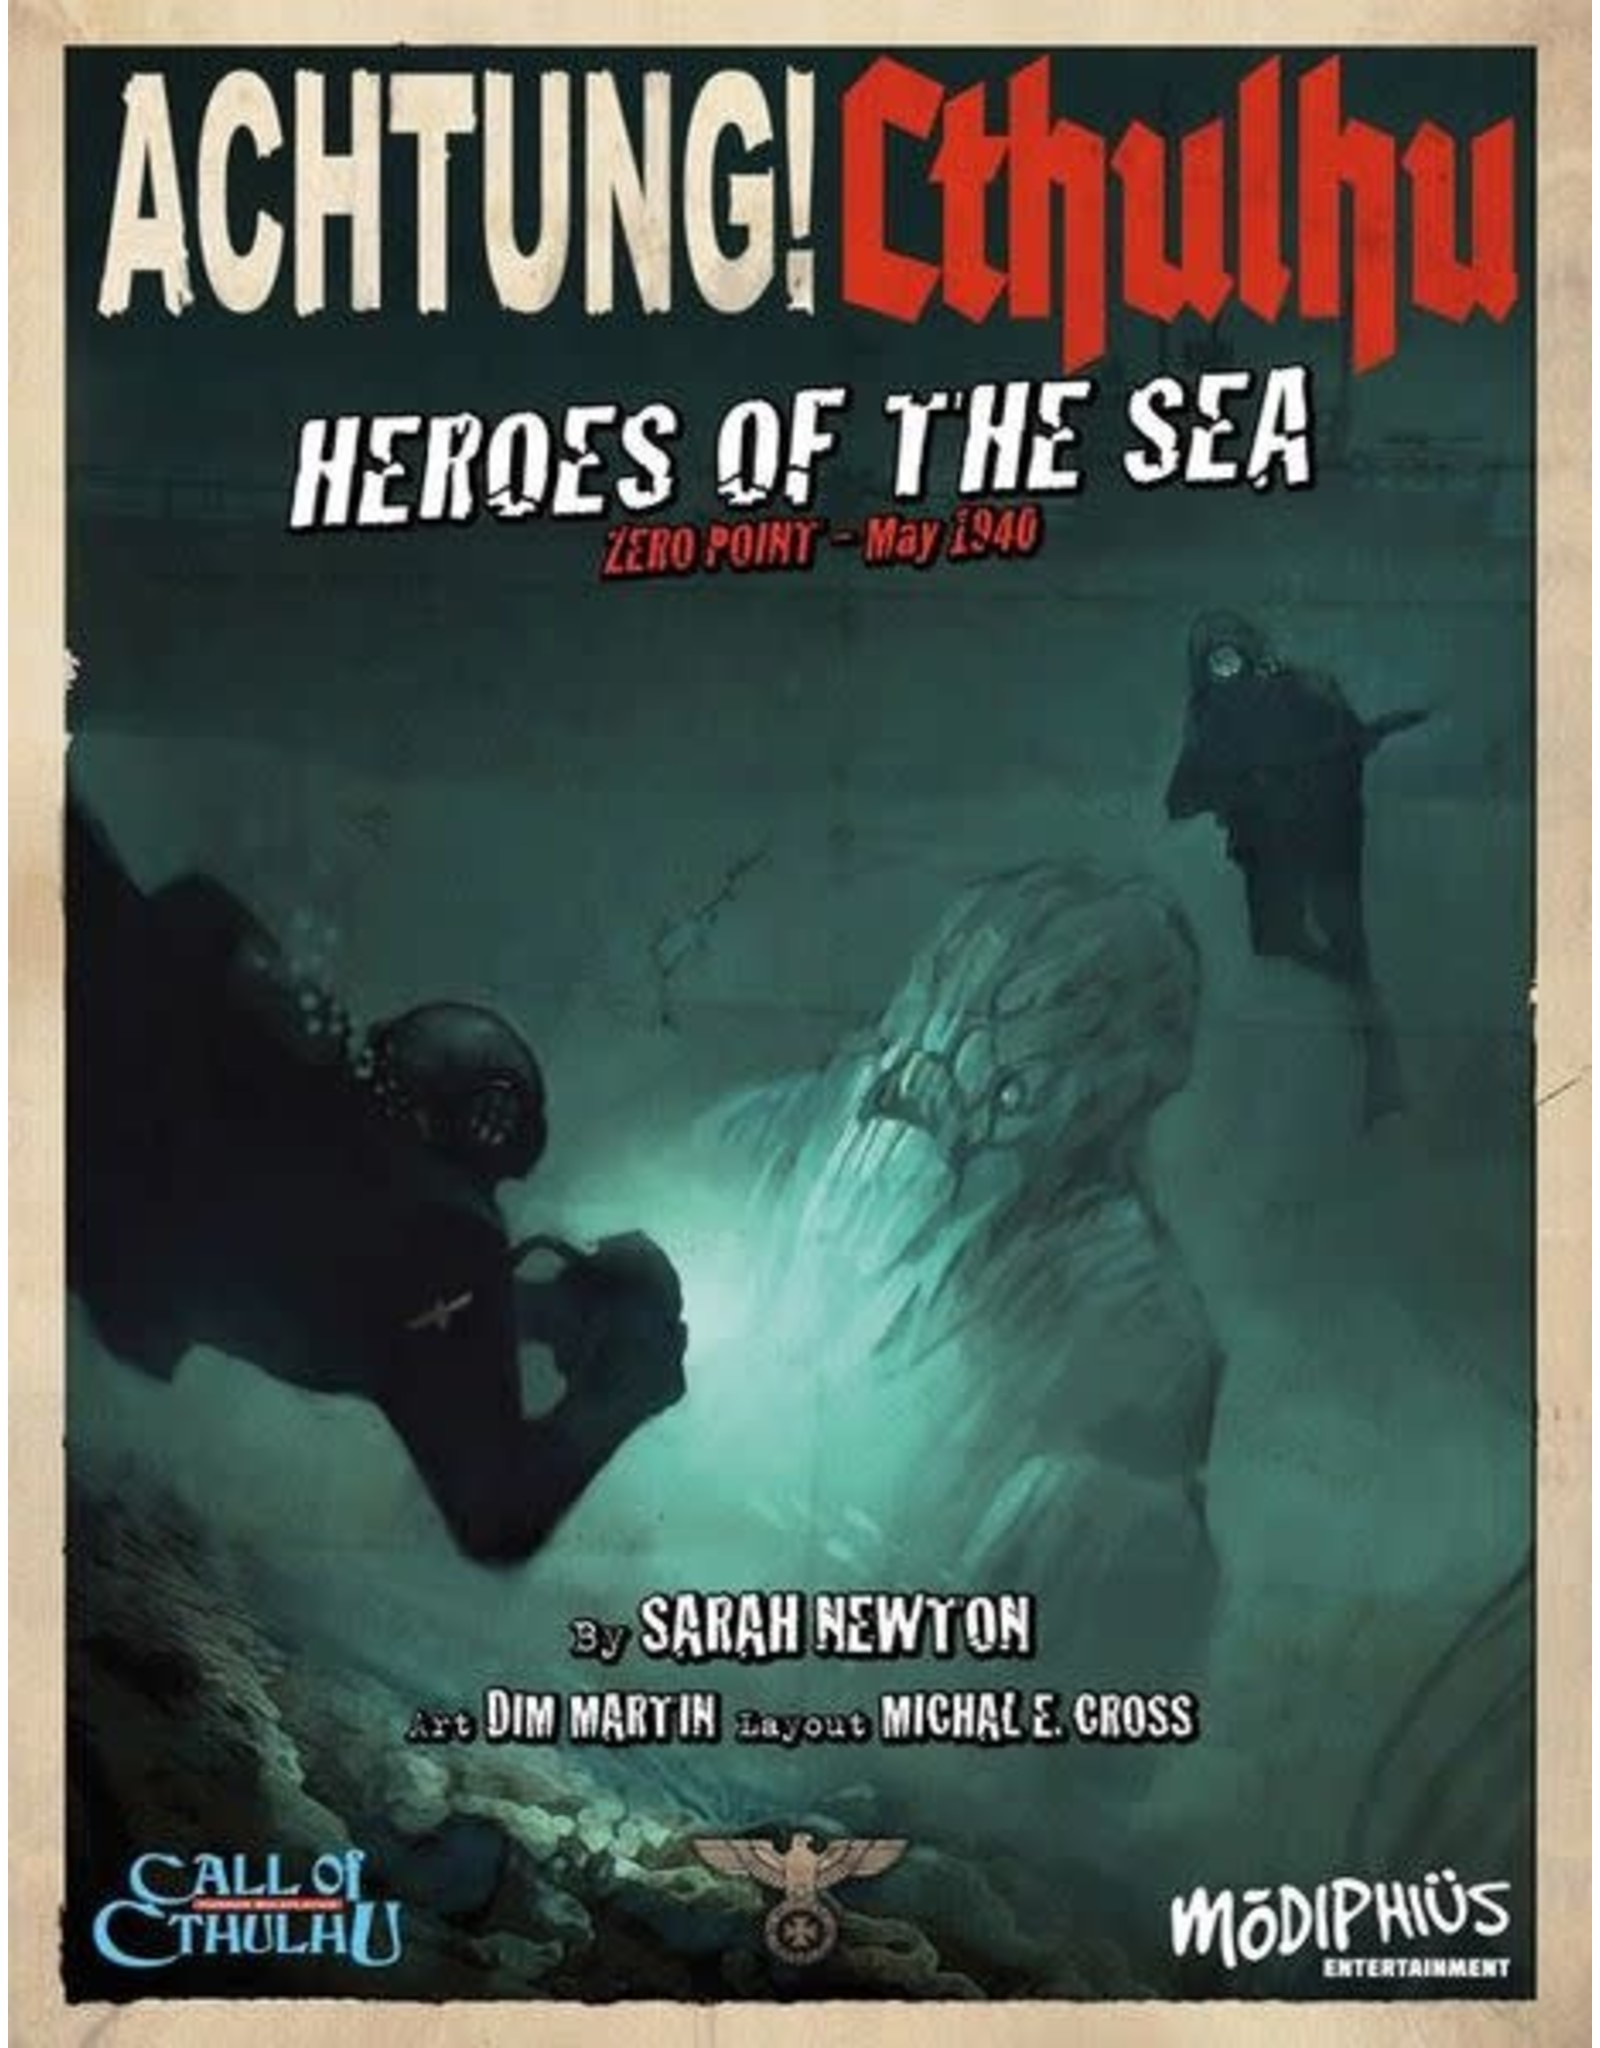 Modiphius Call of Cthulhu 6E: Achtung! Cthulhu: Zero Point II - Heroes of the Sea